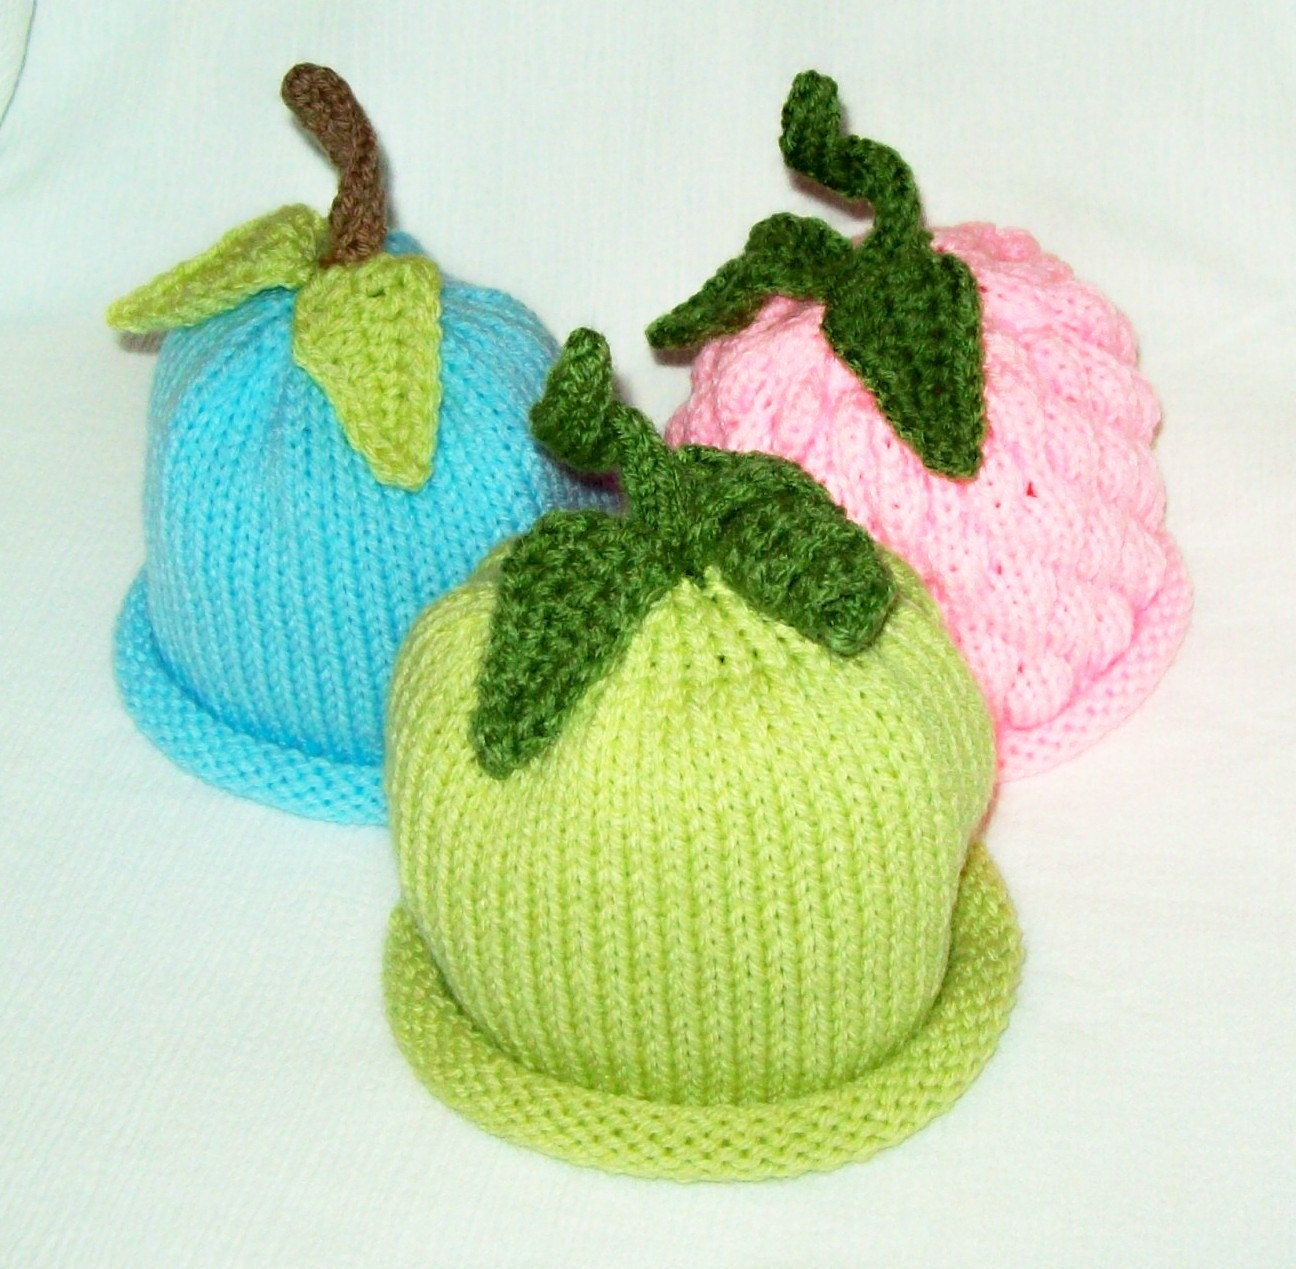 Spring Fling Knit Newborn Fruit Vegetable by LAOriginalsjustkidz